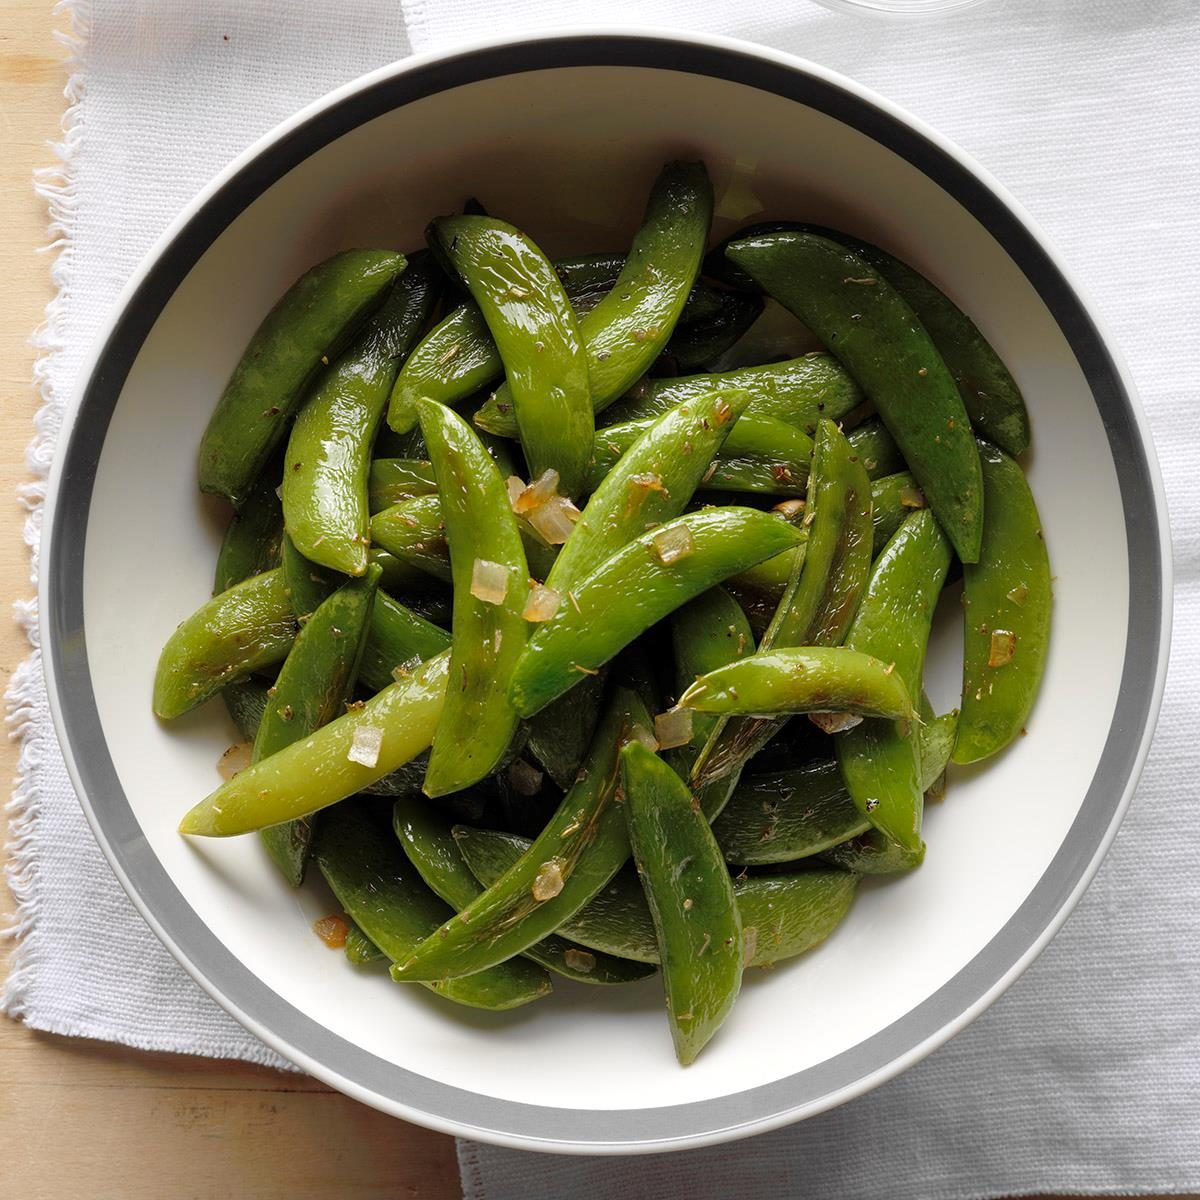 Calm Roasted Sugar Snap Peas Exps Sdam18 36454 B11 30 9b How To Cook Snap Peas Steamed How To Cook Snap Peas Salad nice food How To Cook Snap Peas